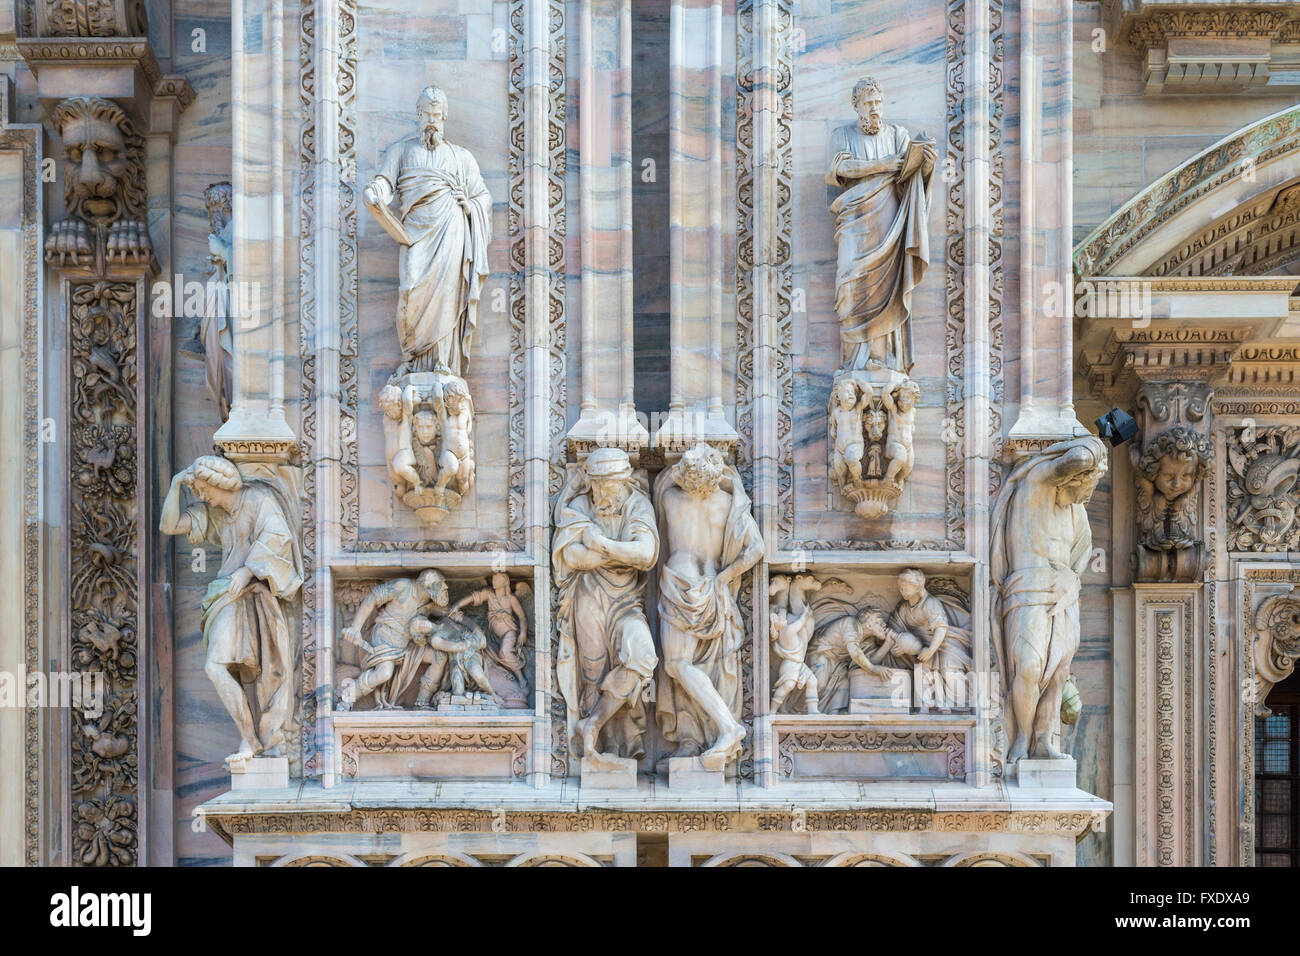 Sculptures on the marble facade, Milan Cathedral, Piazza del Duomo, Milan, Italy - Stock Image